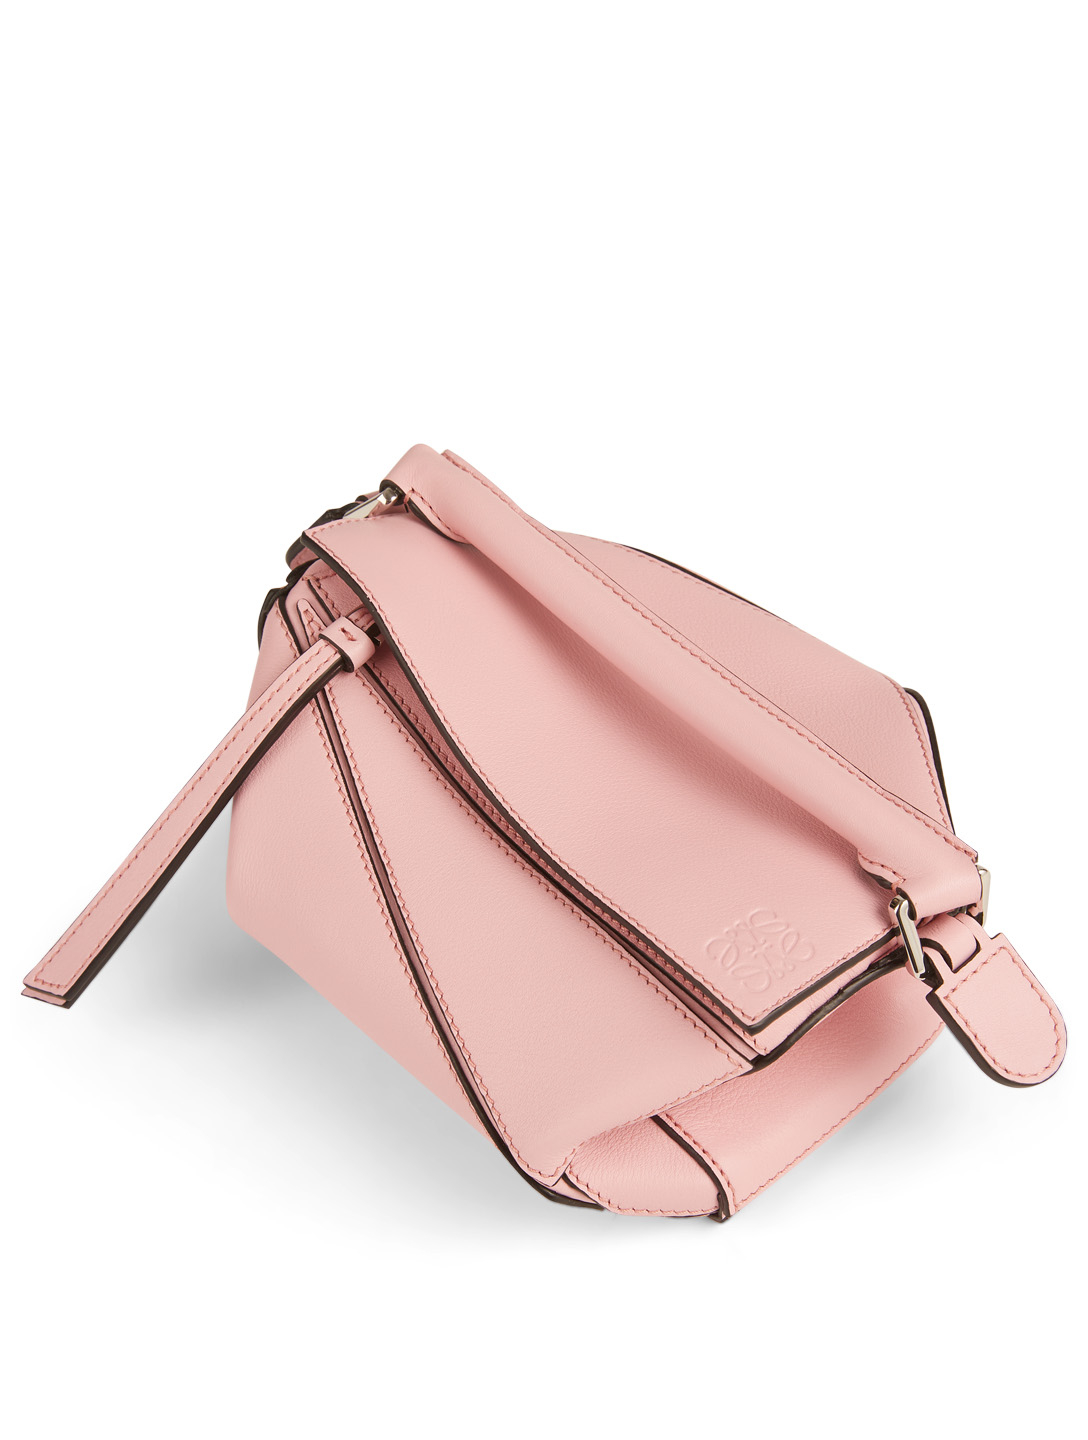 LOEWE Mini Puzzle Leather Crossbody Bag Women's Pink